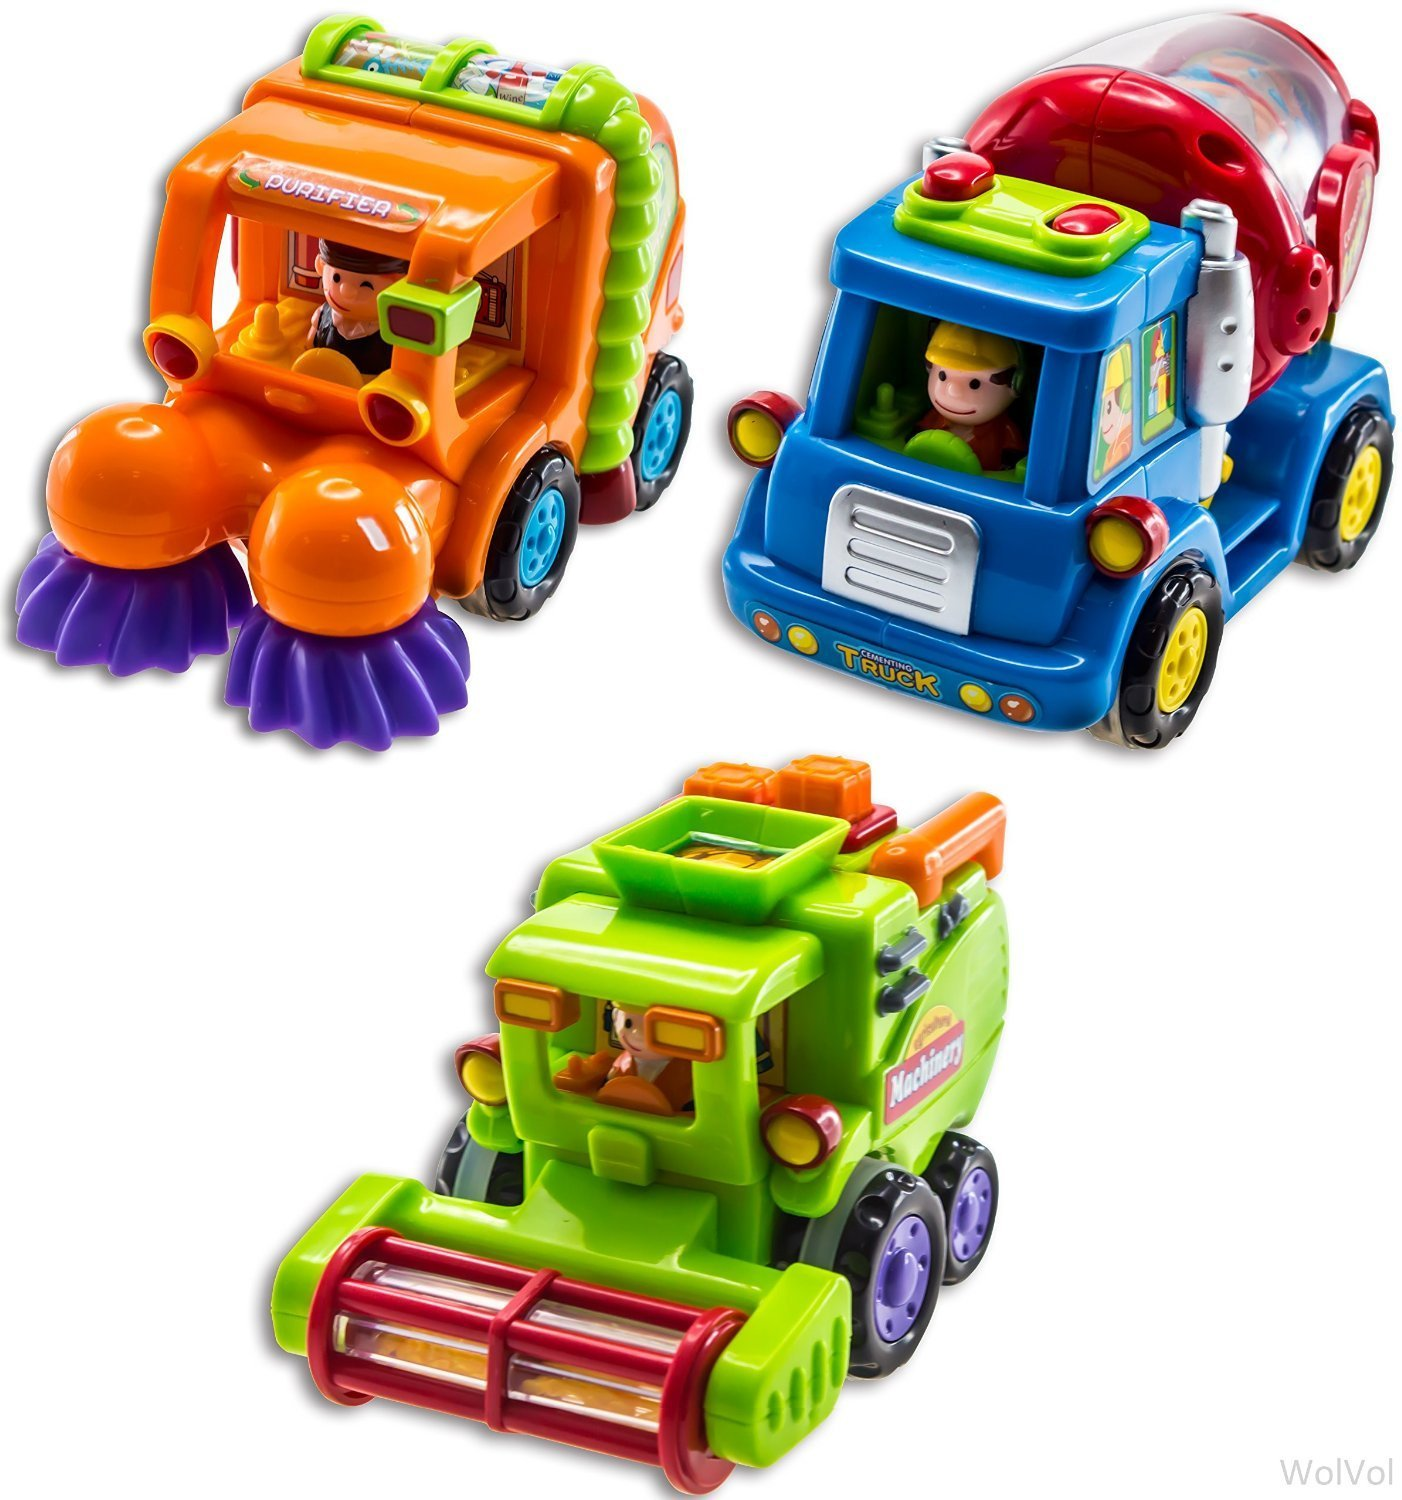 WolVol (Set of 3 Push and Go Friction Powered Car Toys for Boys - Street Sweeper Truck, Cement Mixer Truck, Harvester Toy Truck (Cars Have Automatic Functions) by WolVol